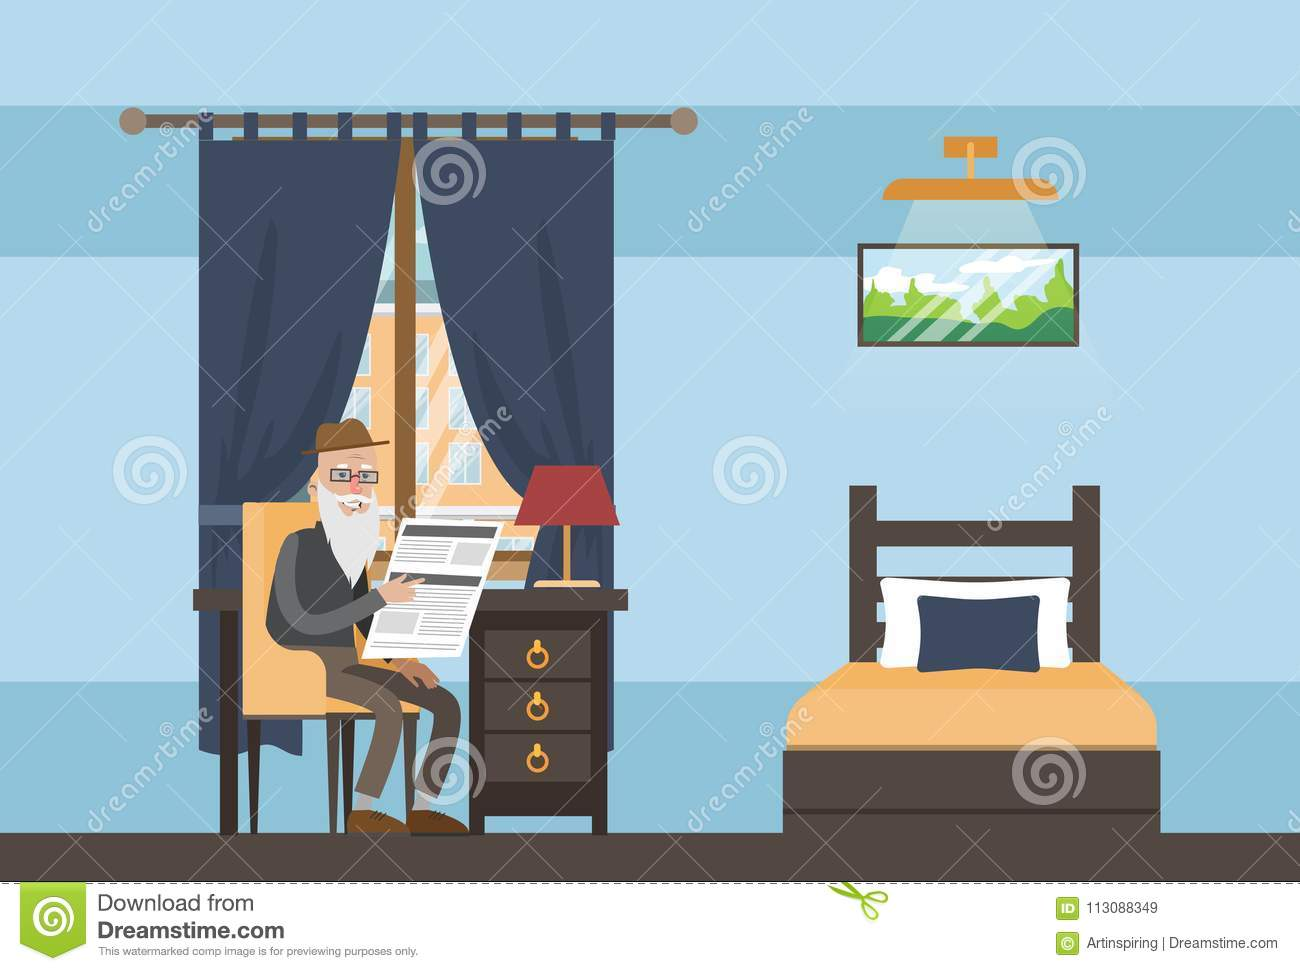 Download Nursing Home Interior. Stock Vector. Illustration Of Design    113088349